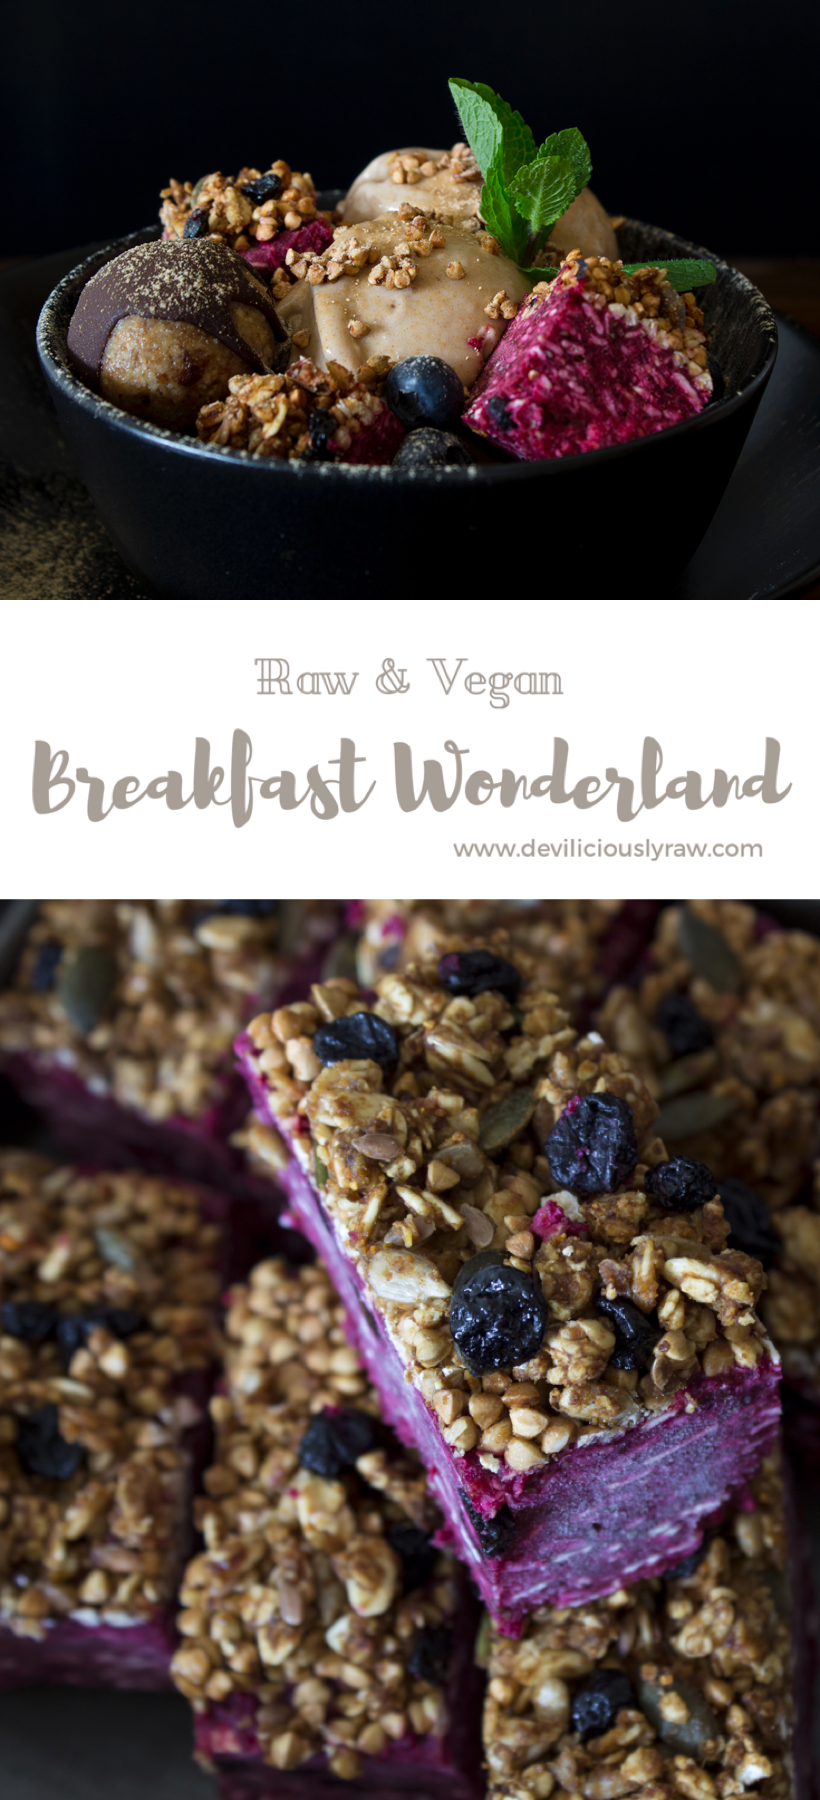 Delicious and Healthy Breakfast Wonderland